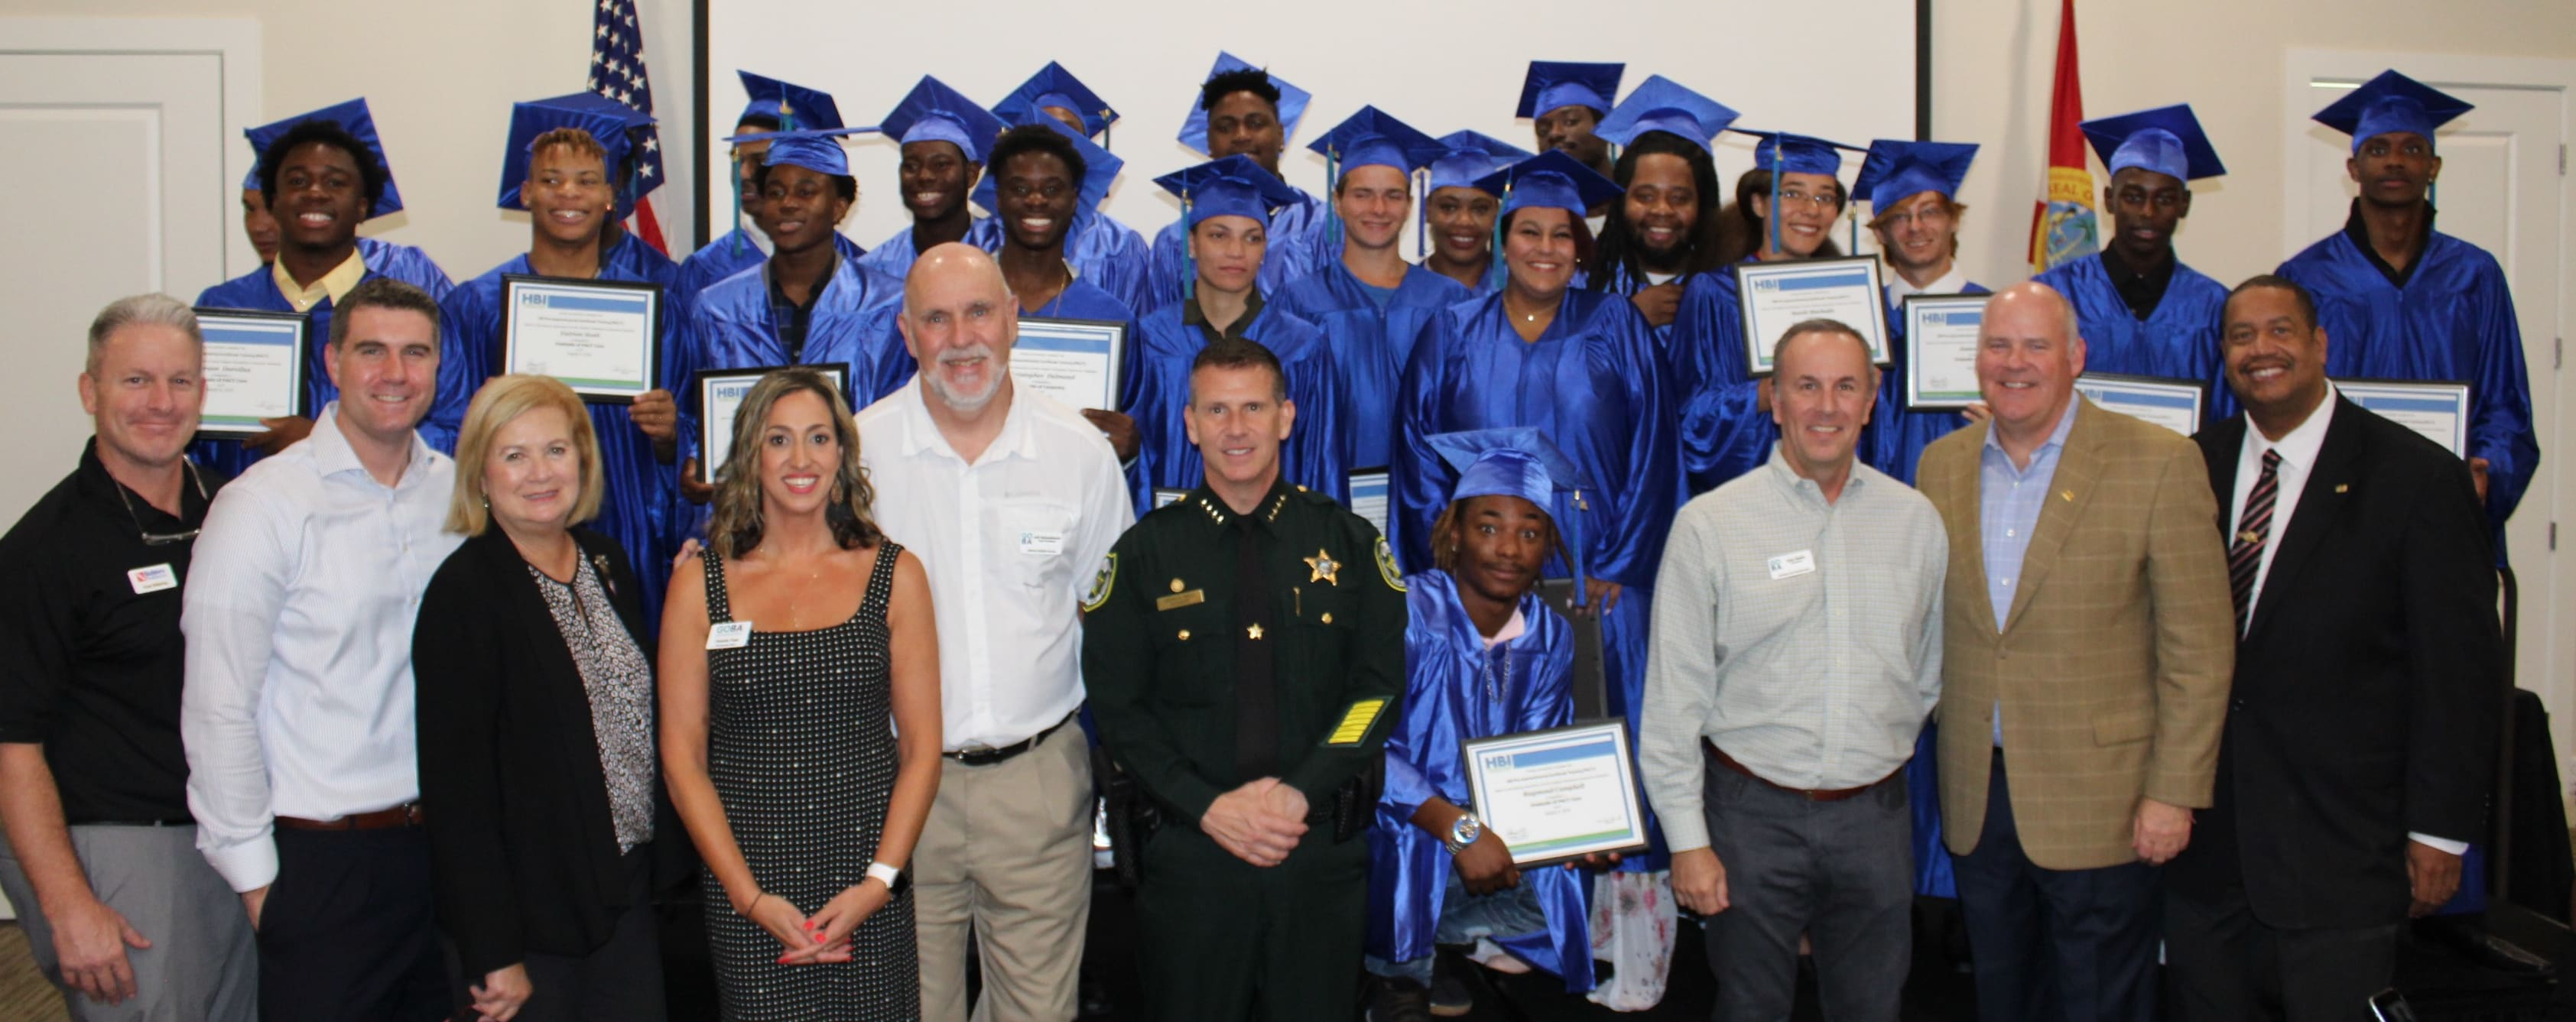 GOBA-and-HBI-Leadership.-Sherriff-Mina-with-Graduates-w3369.jpg